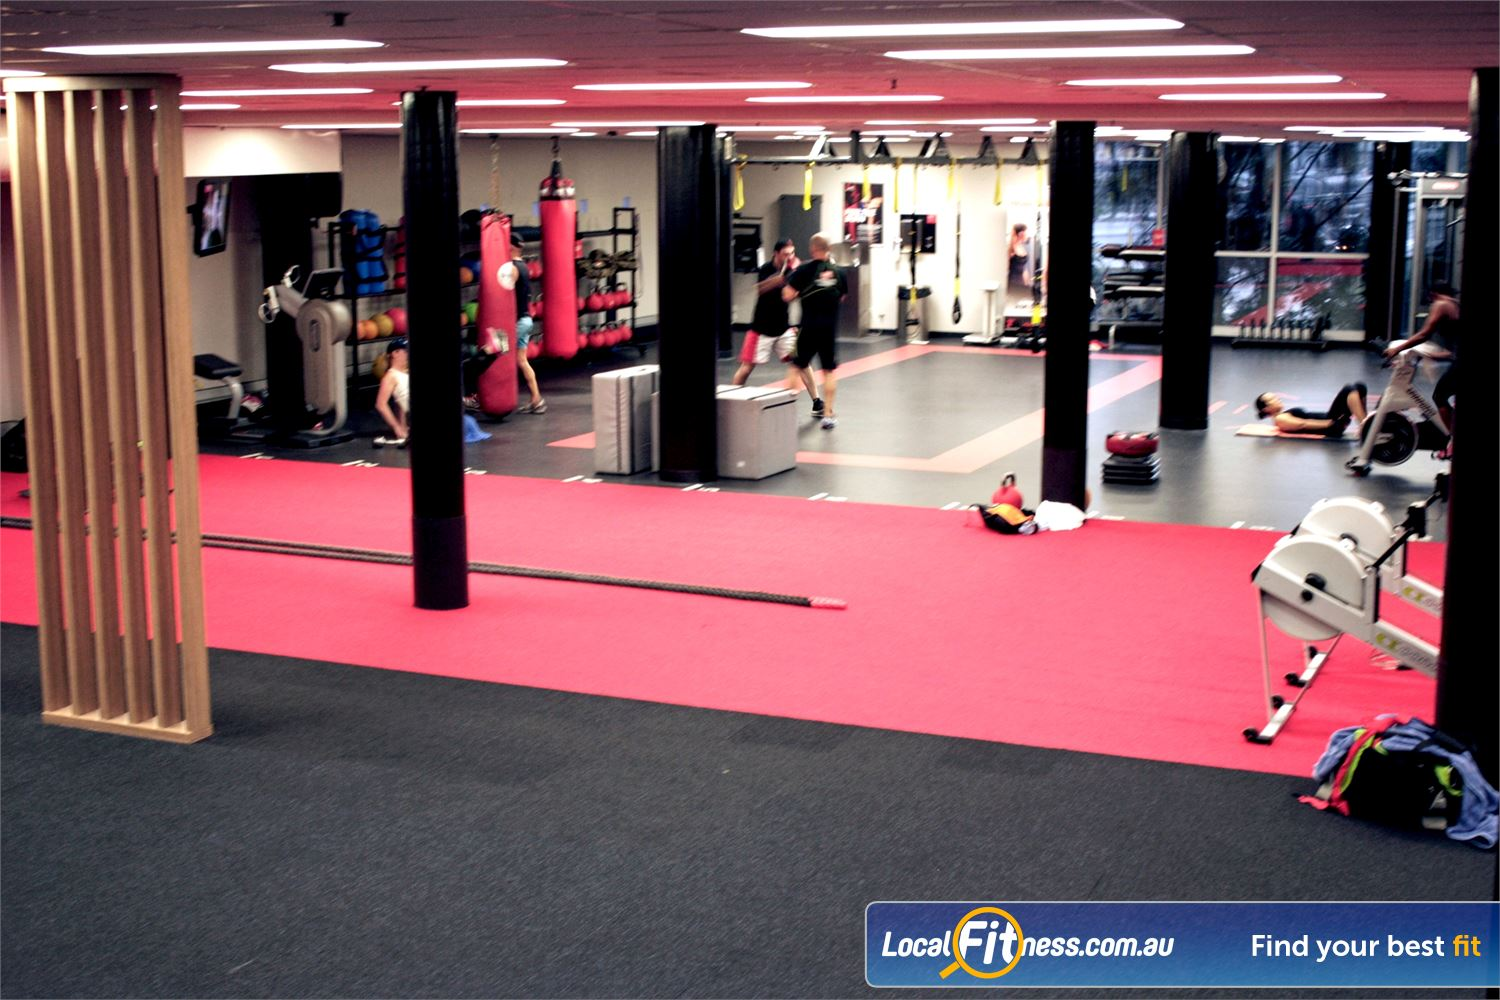 Fitness First Sylvania The freestyle training zone fully equipped with boxing bags, TRX, kettlebells and more.